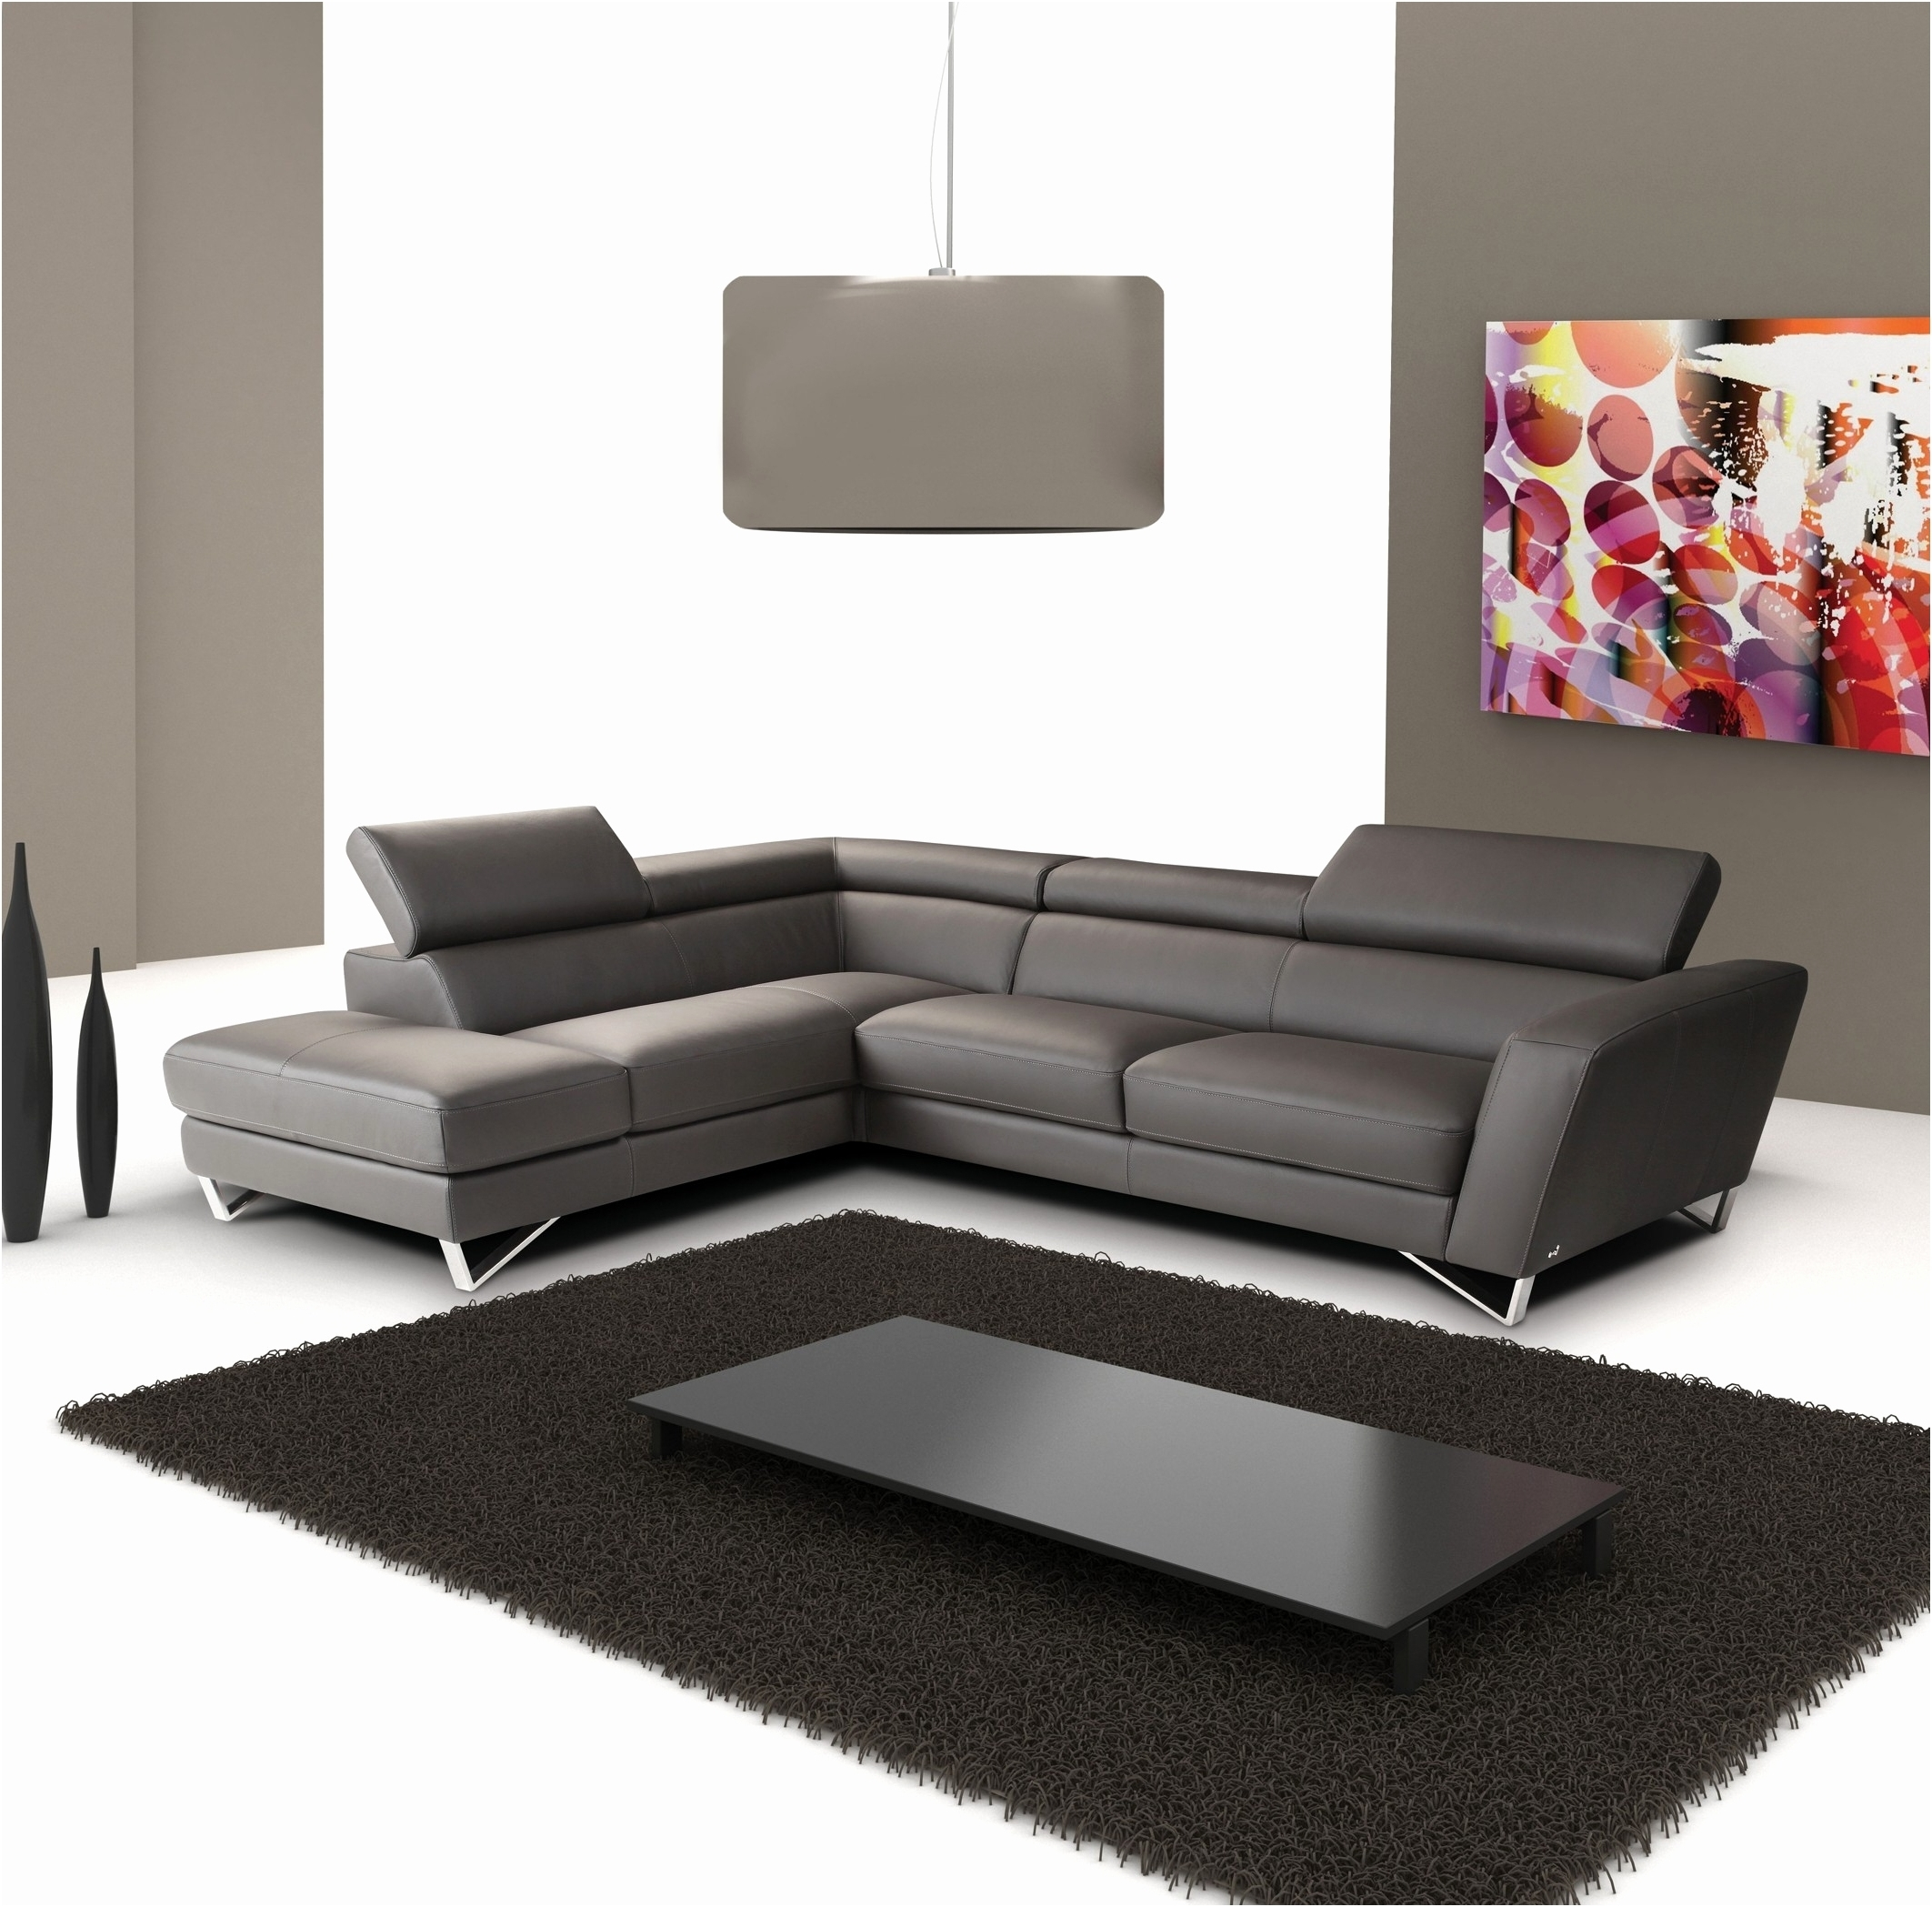 Canada Sale Sectional Sofas Throughout 2018 Sectional Sofa Clearance Brown Leather Fabrica Sofas Canada (View 19 of 20)